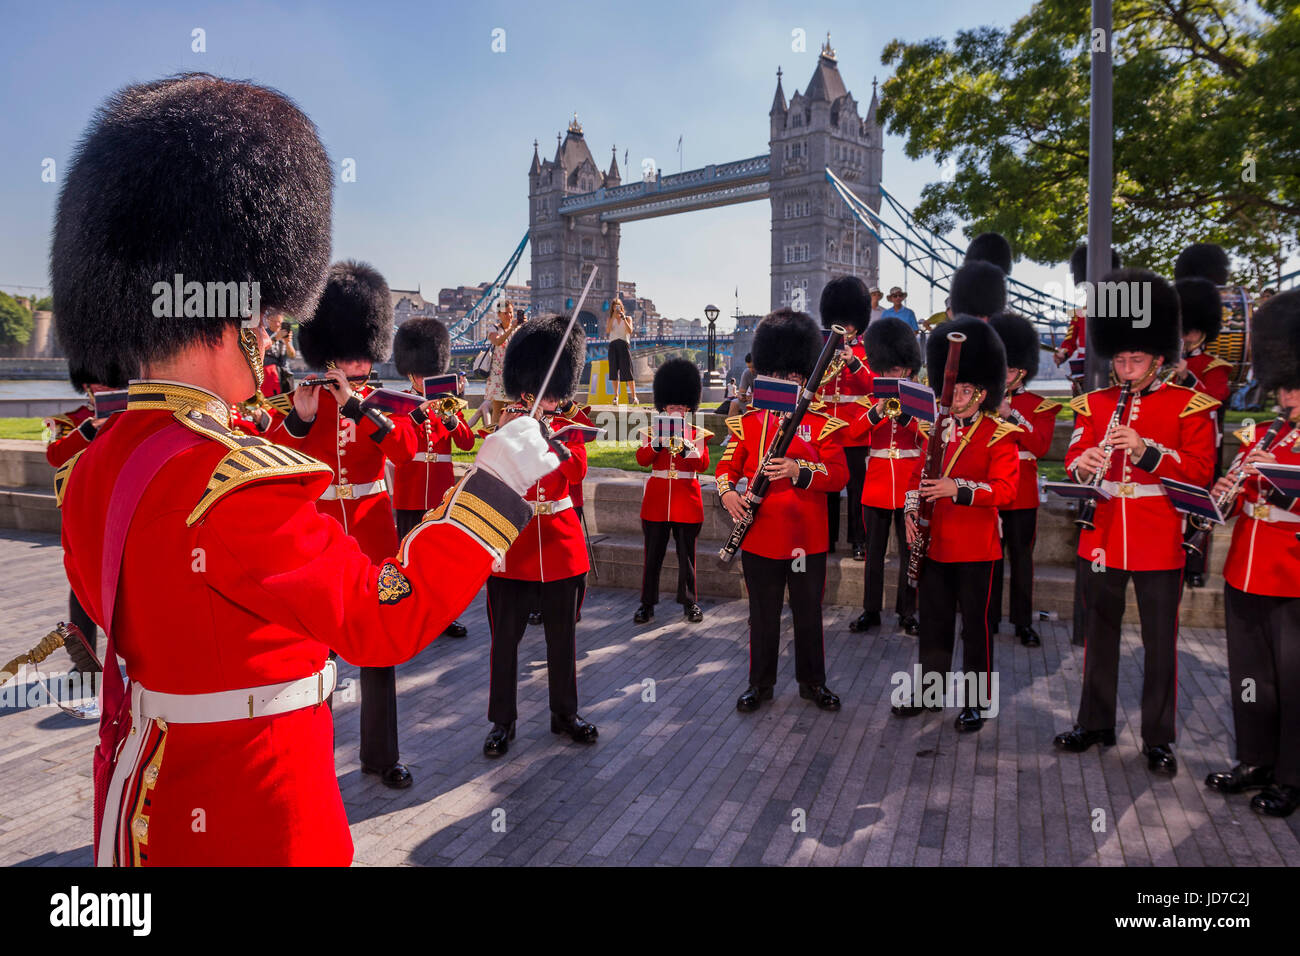 London, UK. 19th June, 2017. The Mayor of London, Sadiq Khan, will be joined by members of the London Assembly, - Stock Image